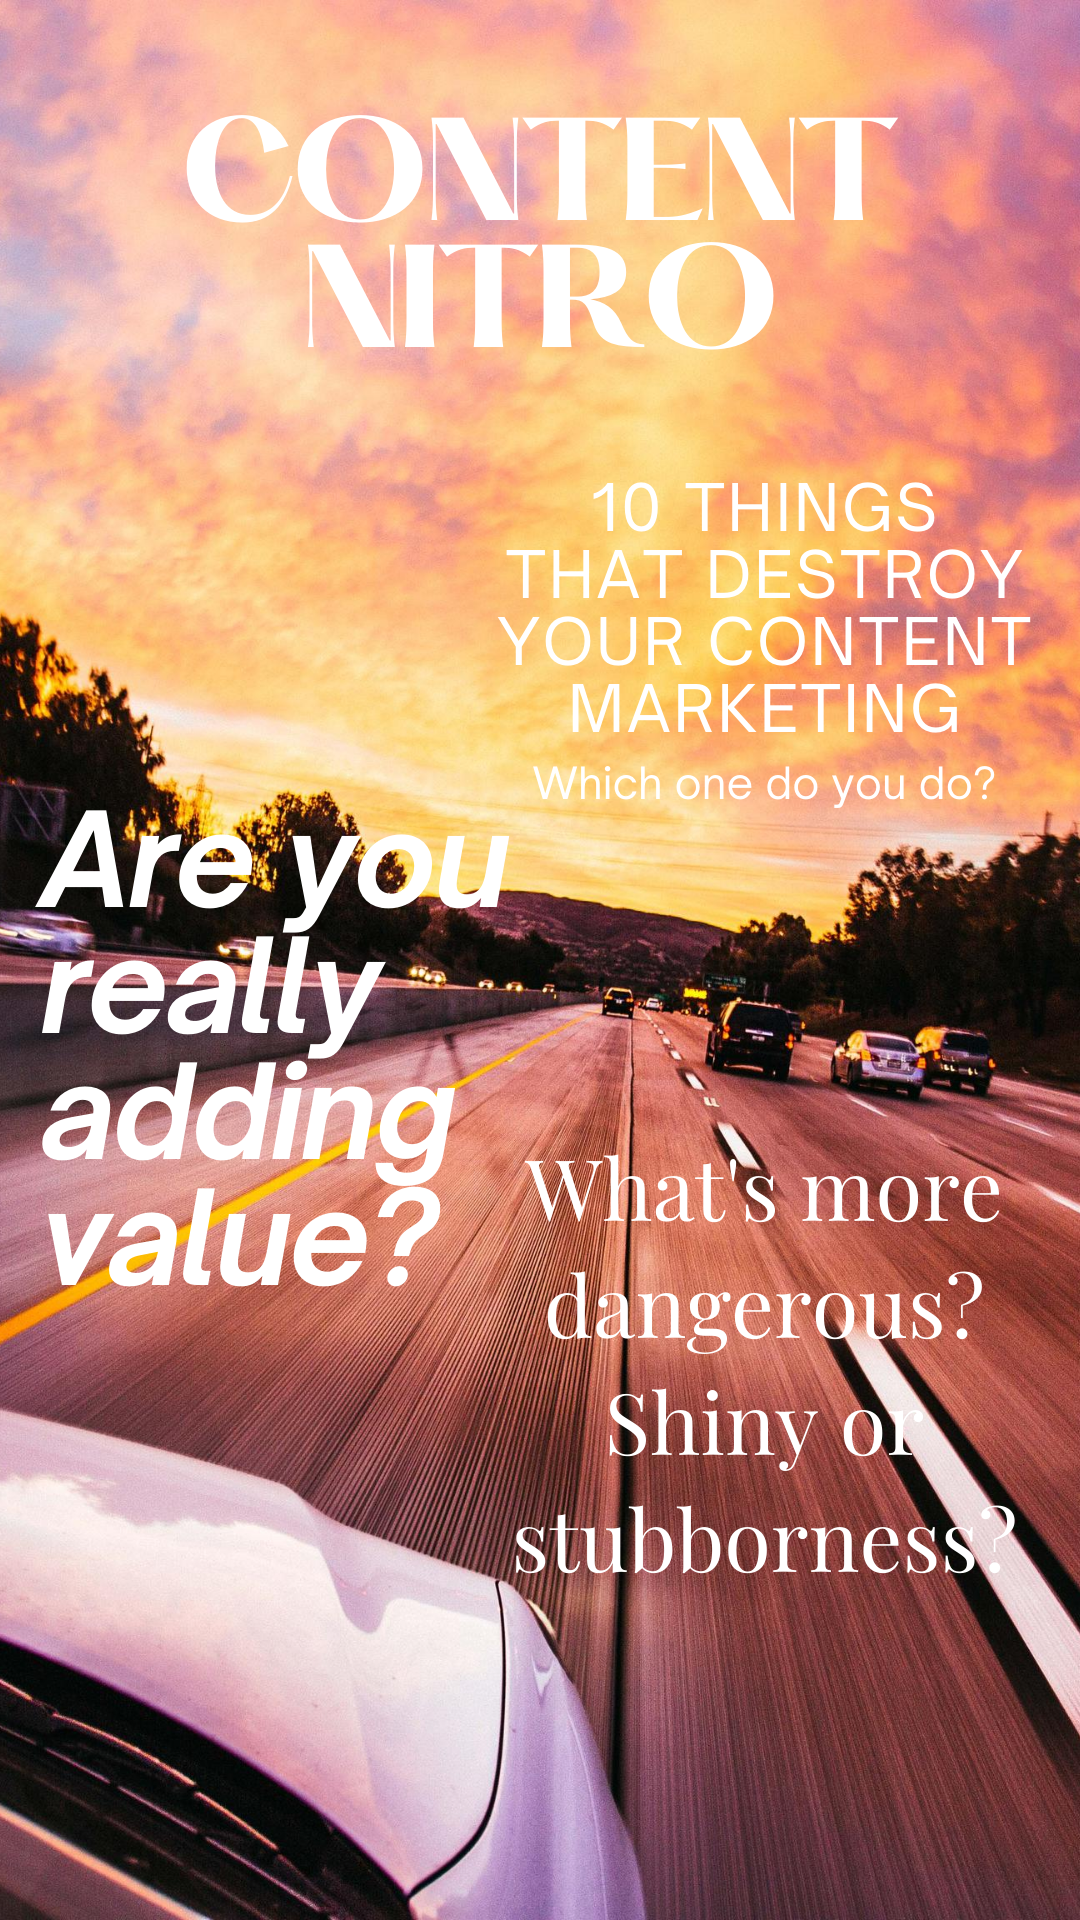 10 Things that Destroy Your Content Marketing